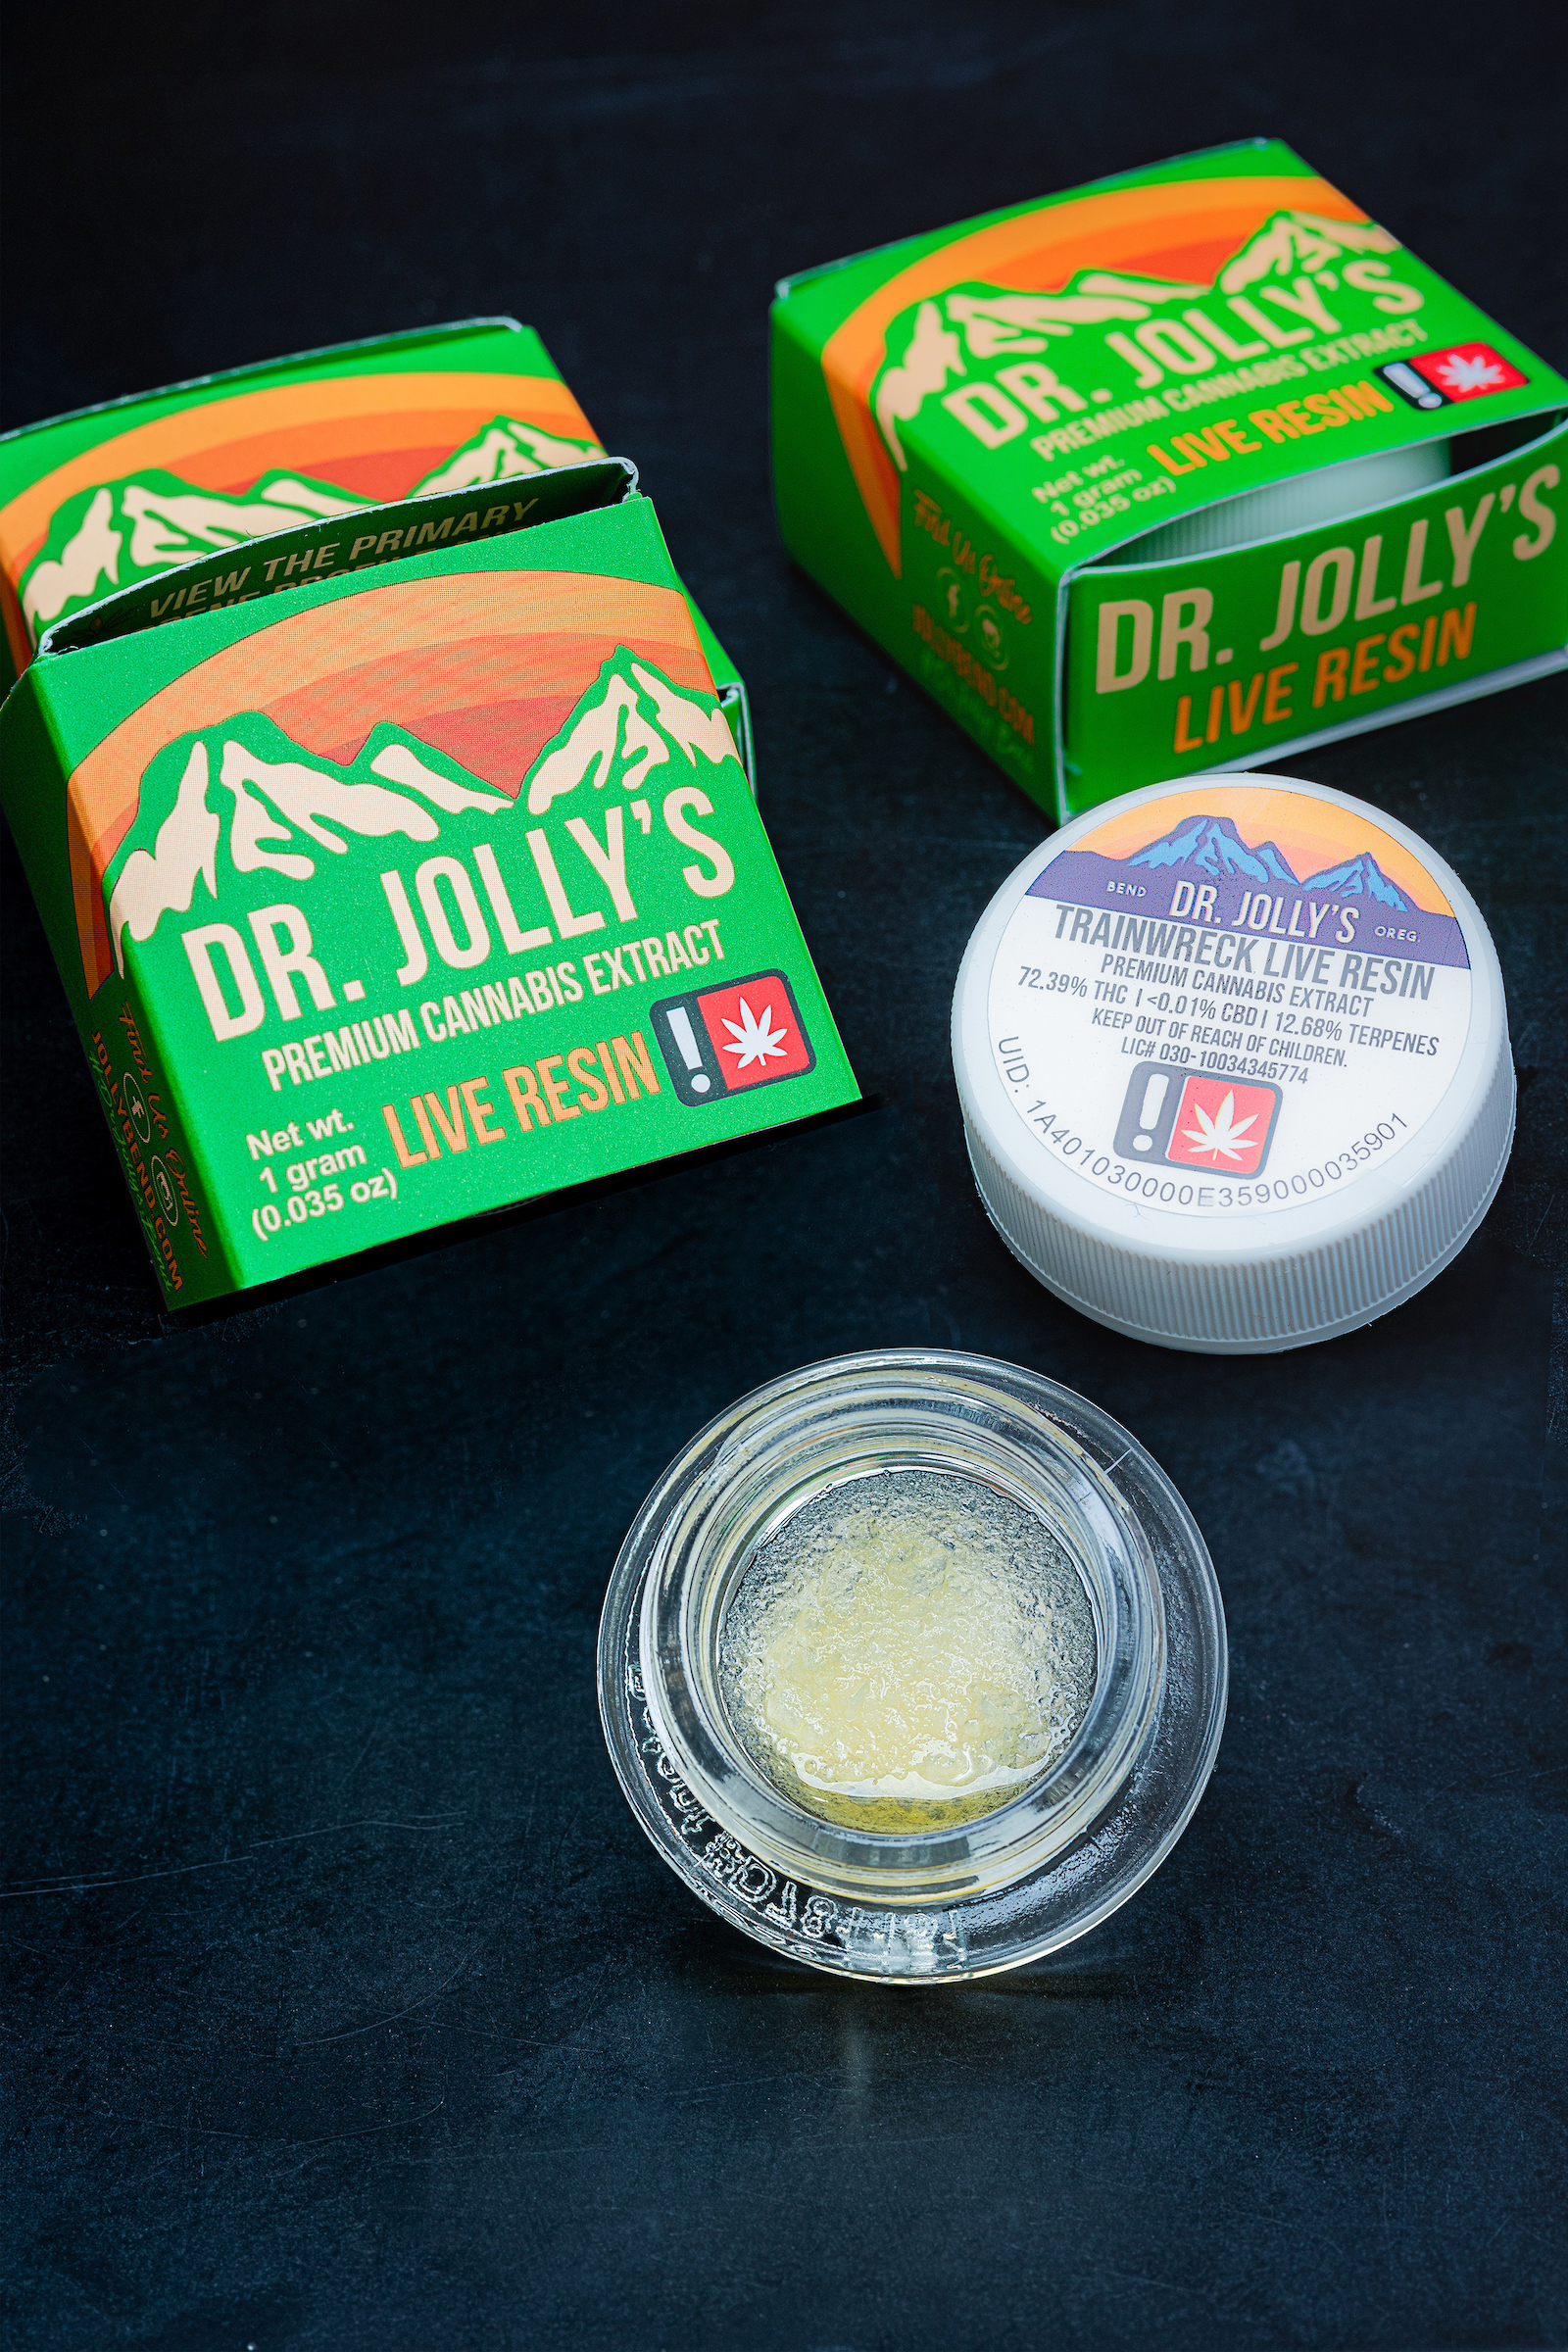 Dr. Jolly's Trainwreck Live Resin Concentrate